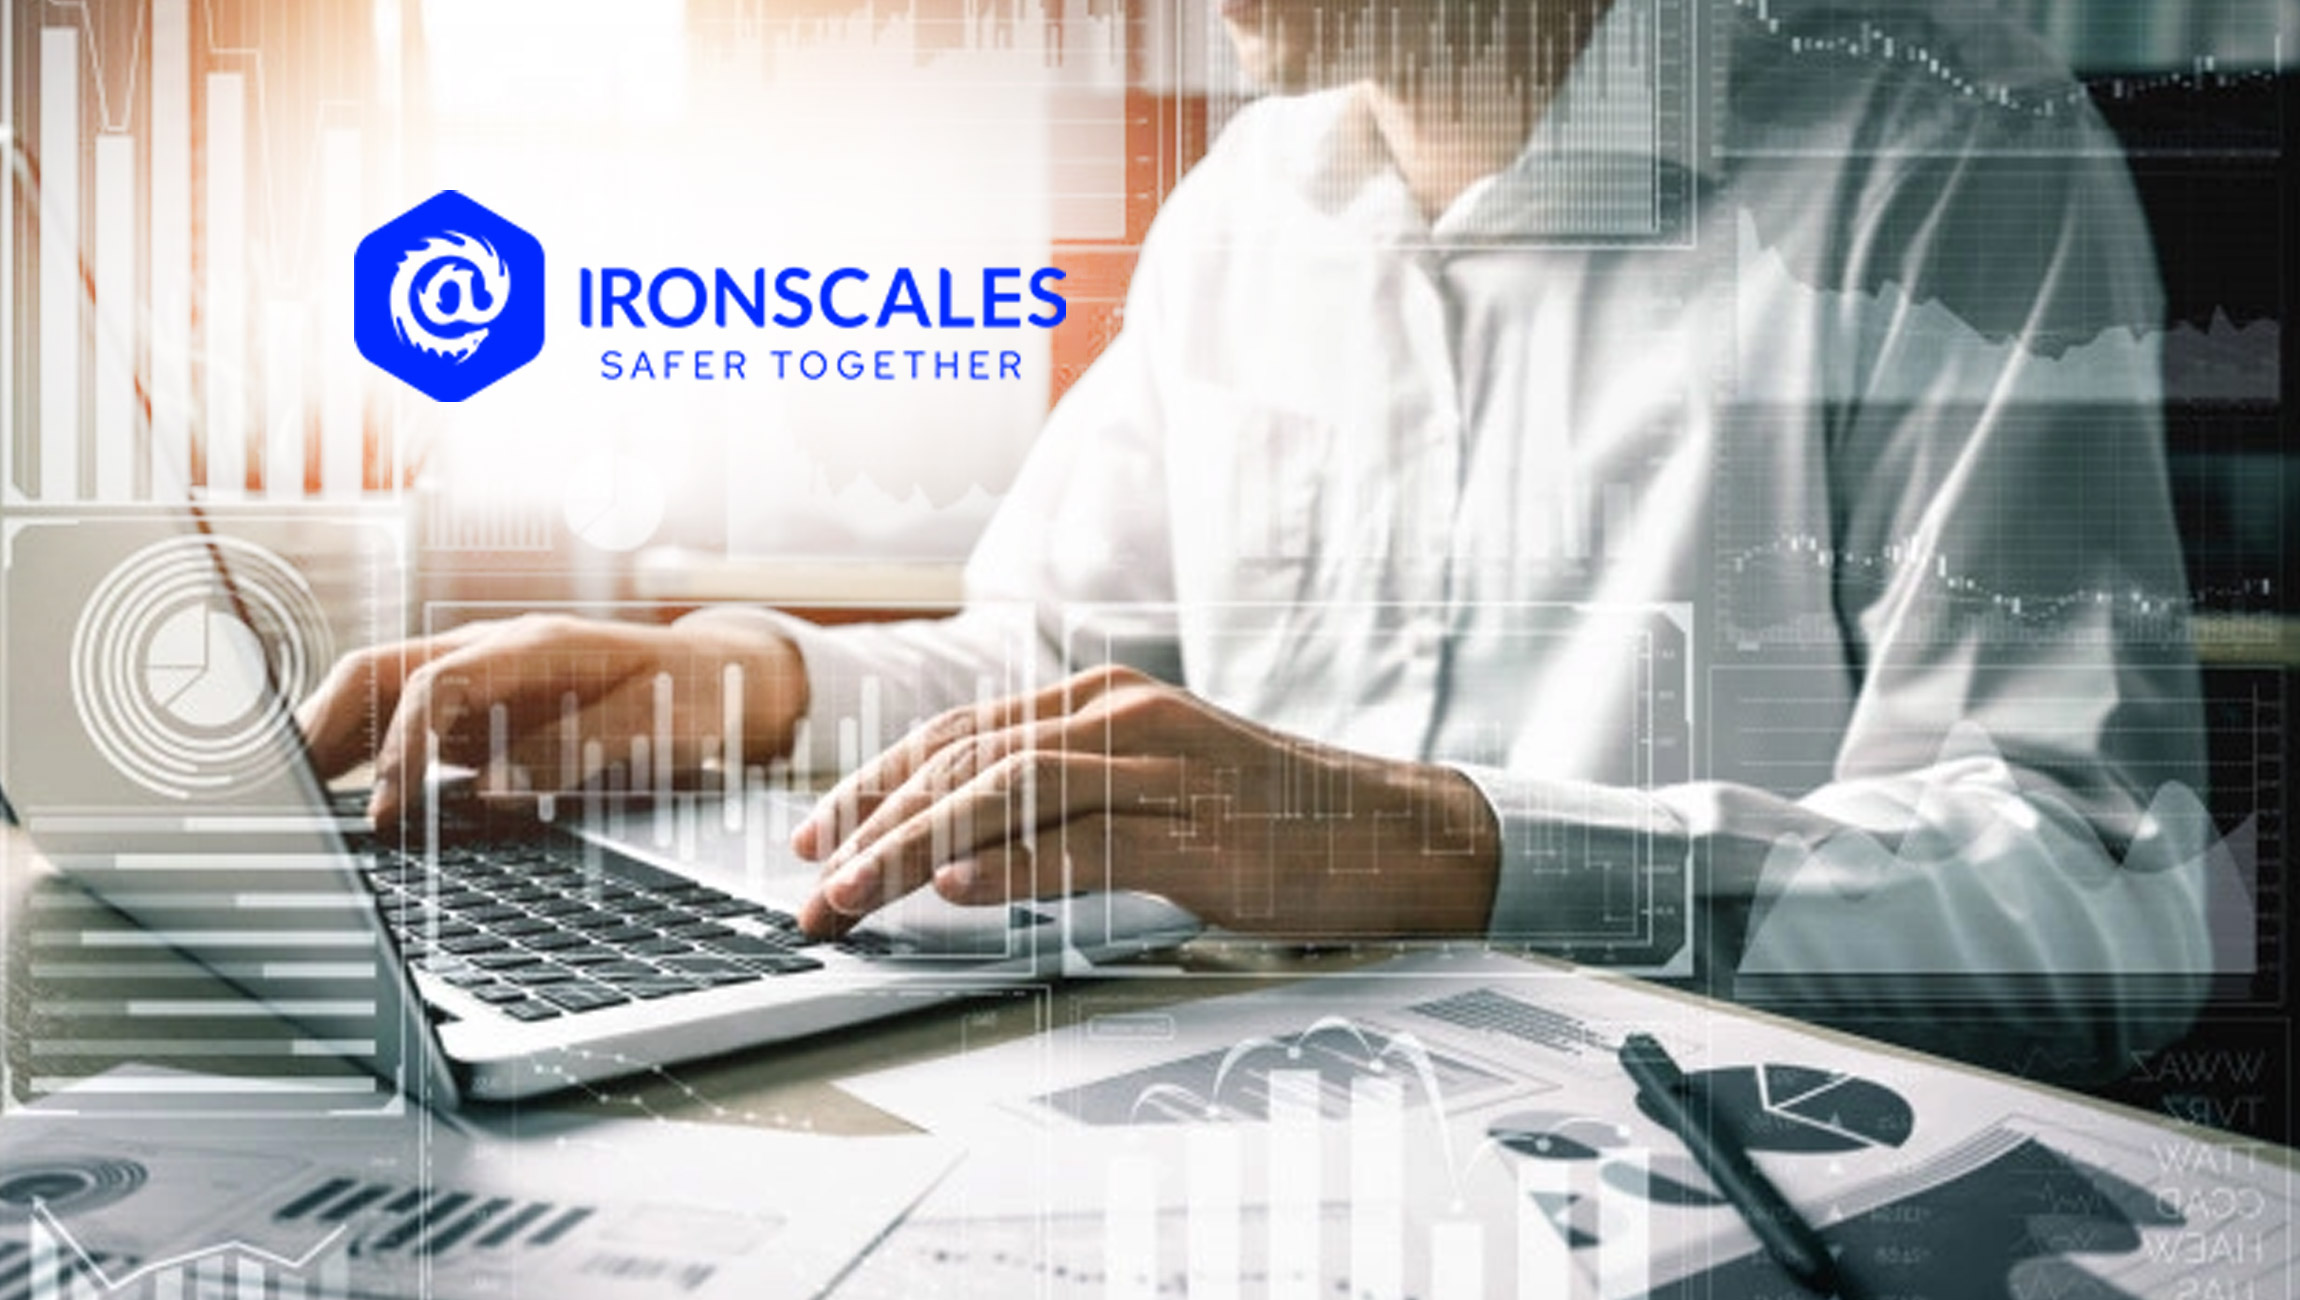 IRONSCALES Channel Program Relaunches with Enhanced Partner Benefits and Sales Strategy